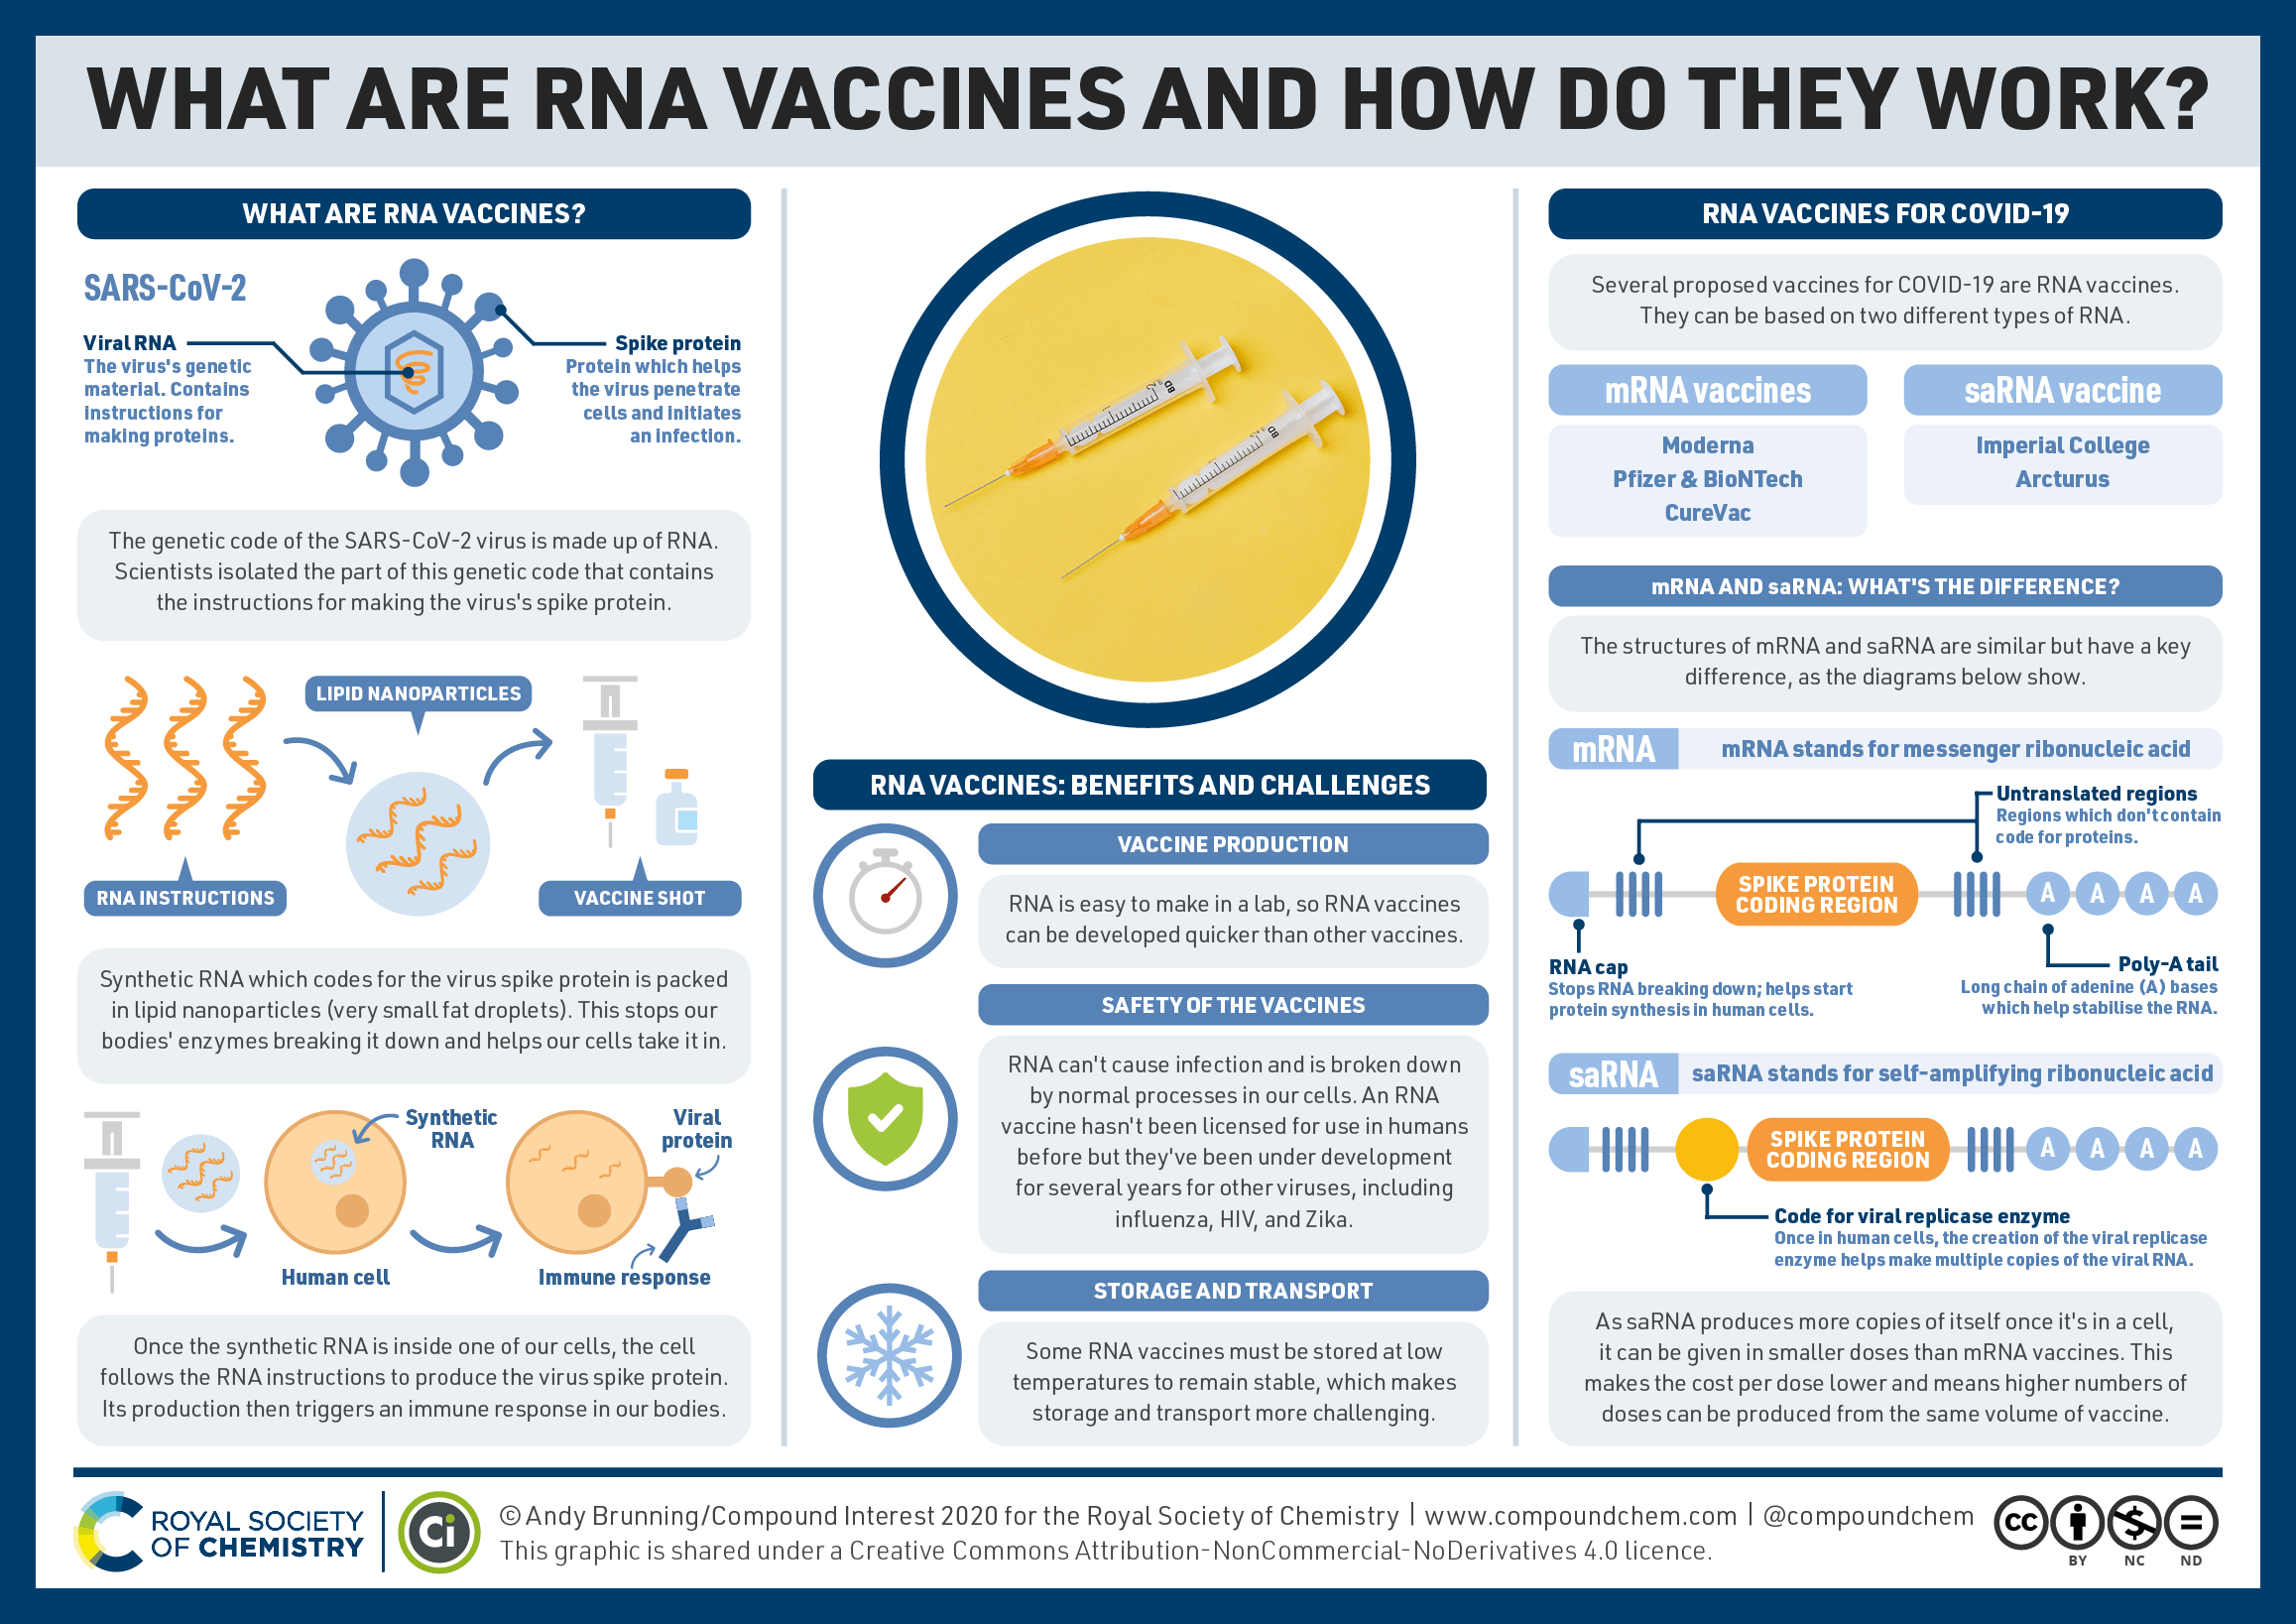 RNA vaccines and how they work